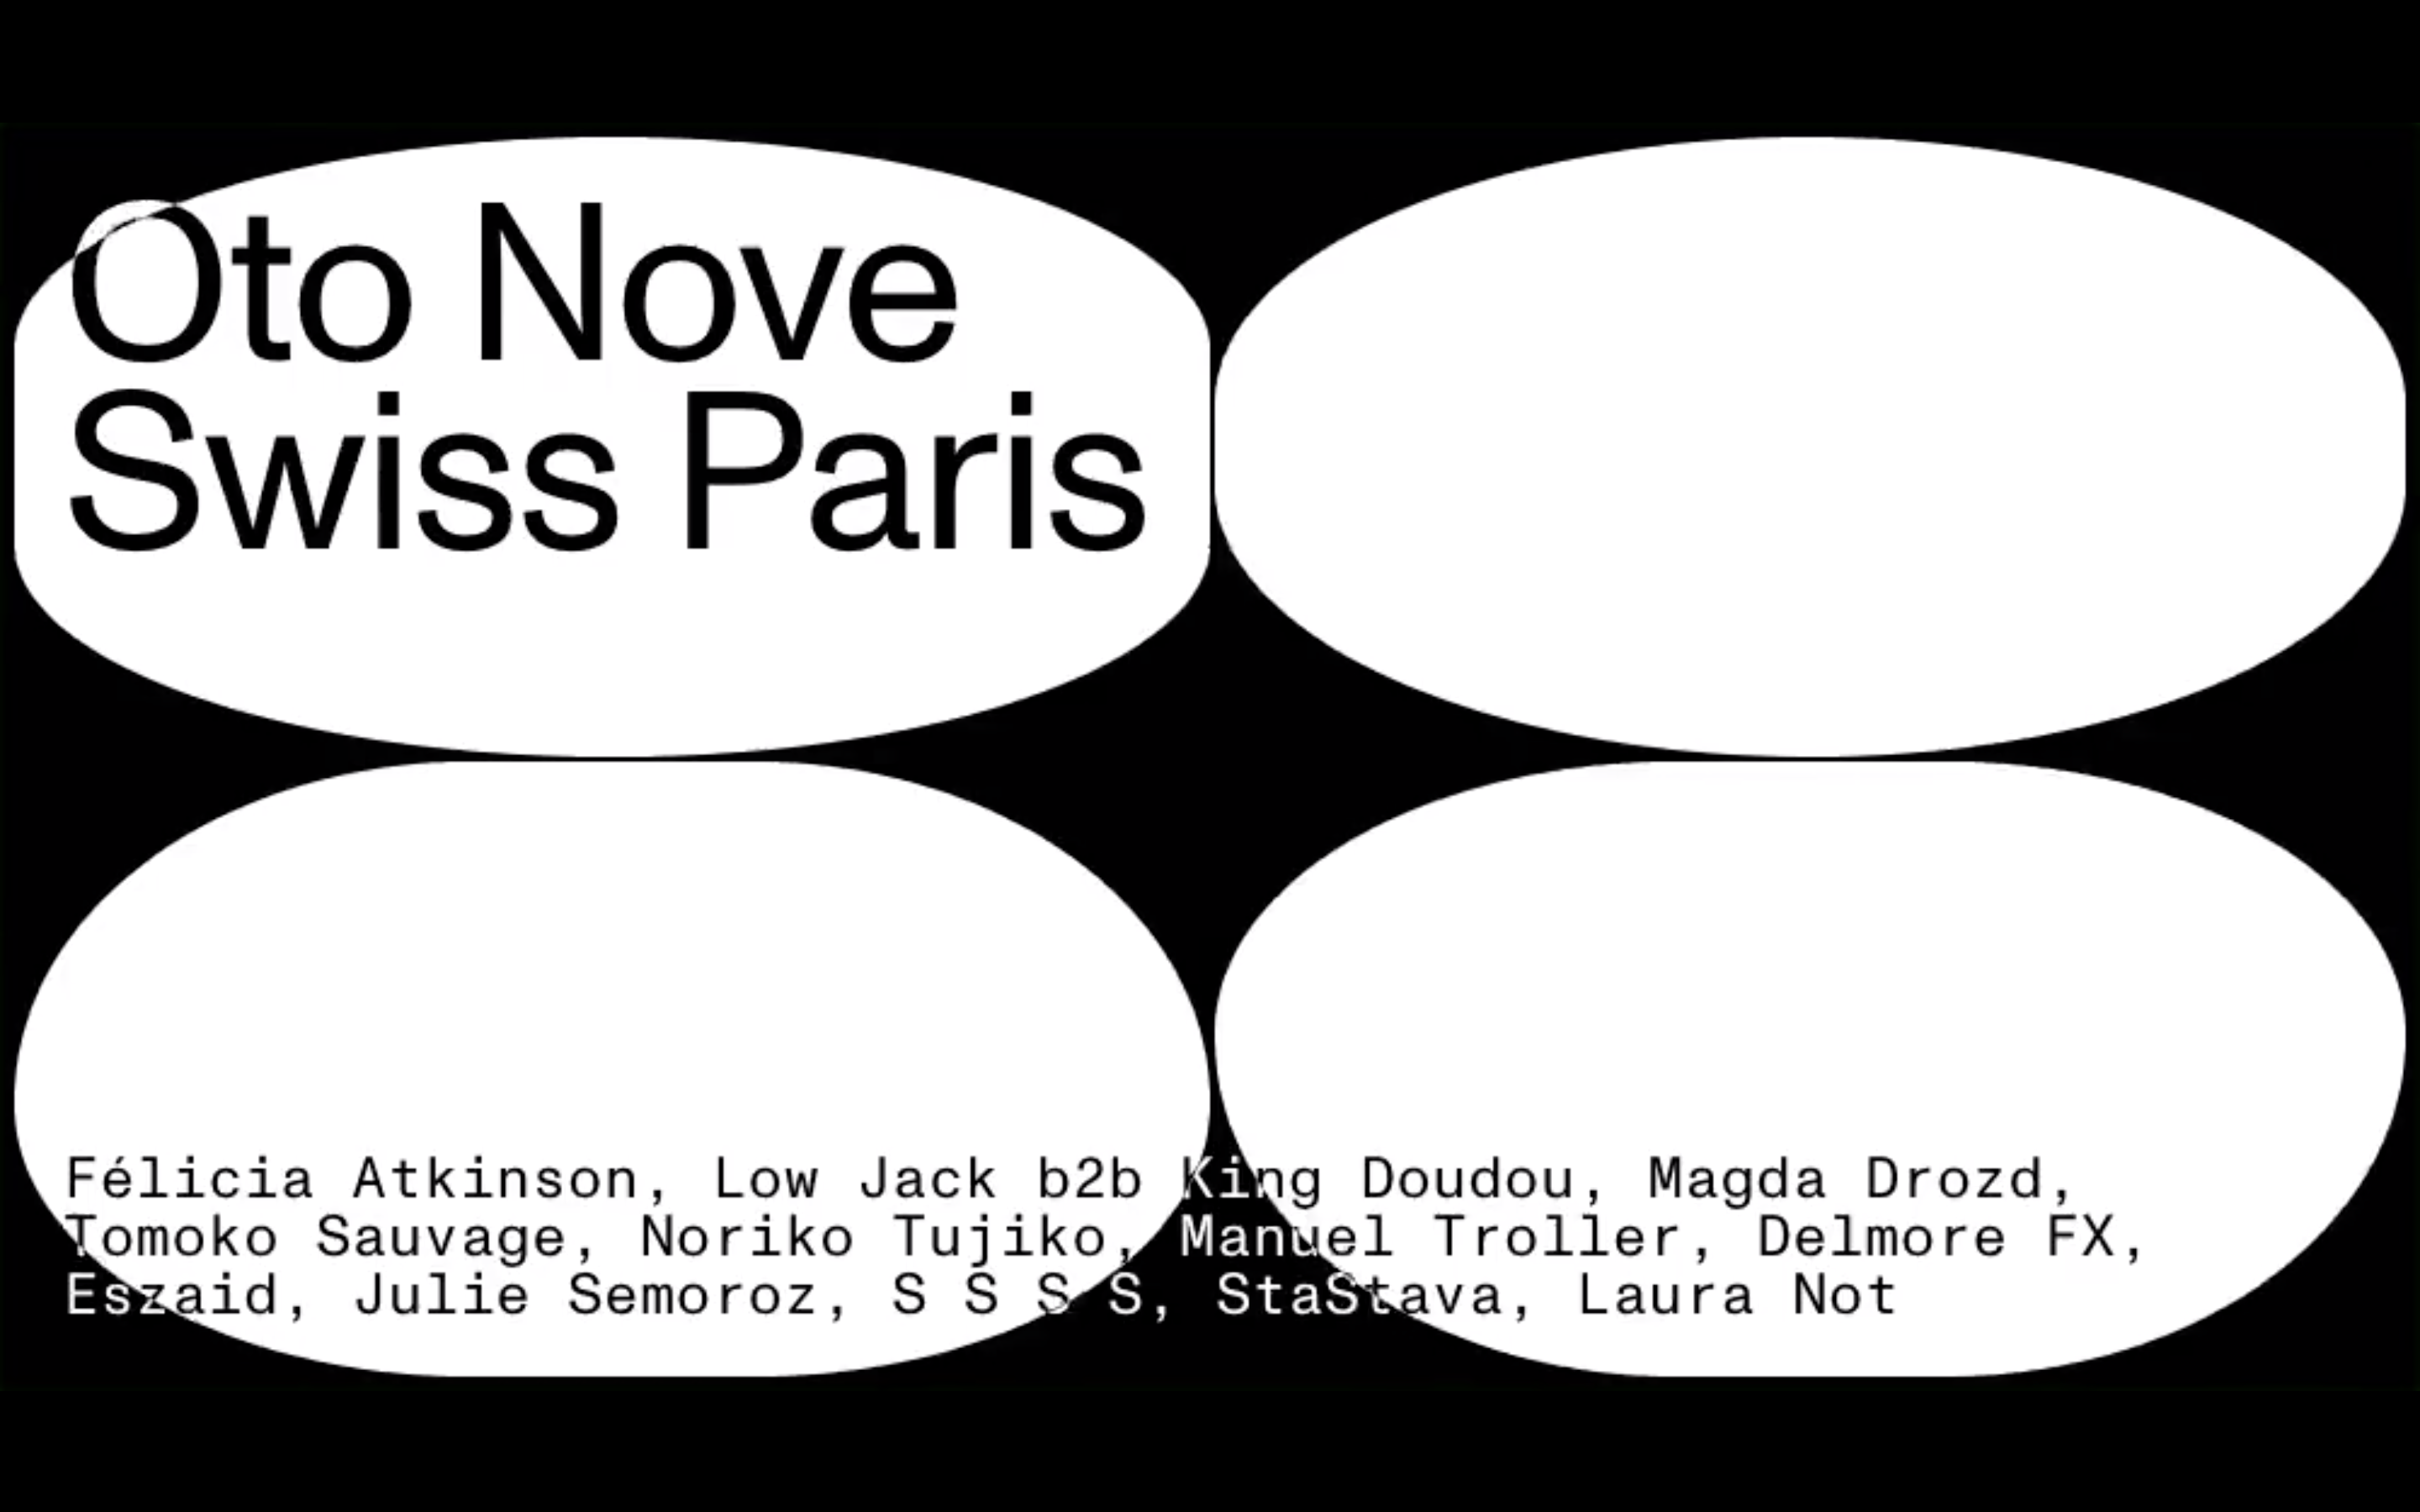 OTO NOVE SWISS PARIS : LOW JACK B2B KING DOUDOU, S S S S, STASTAVA, LAURA NOT